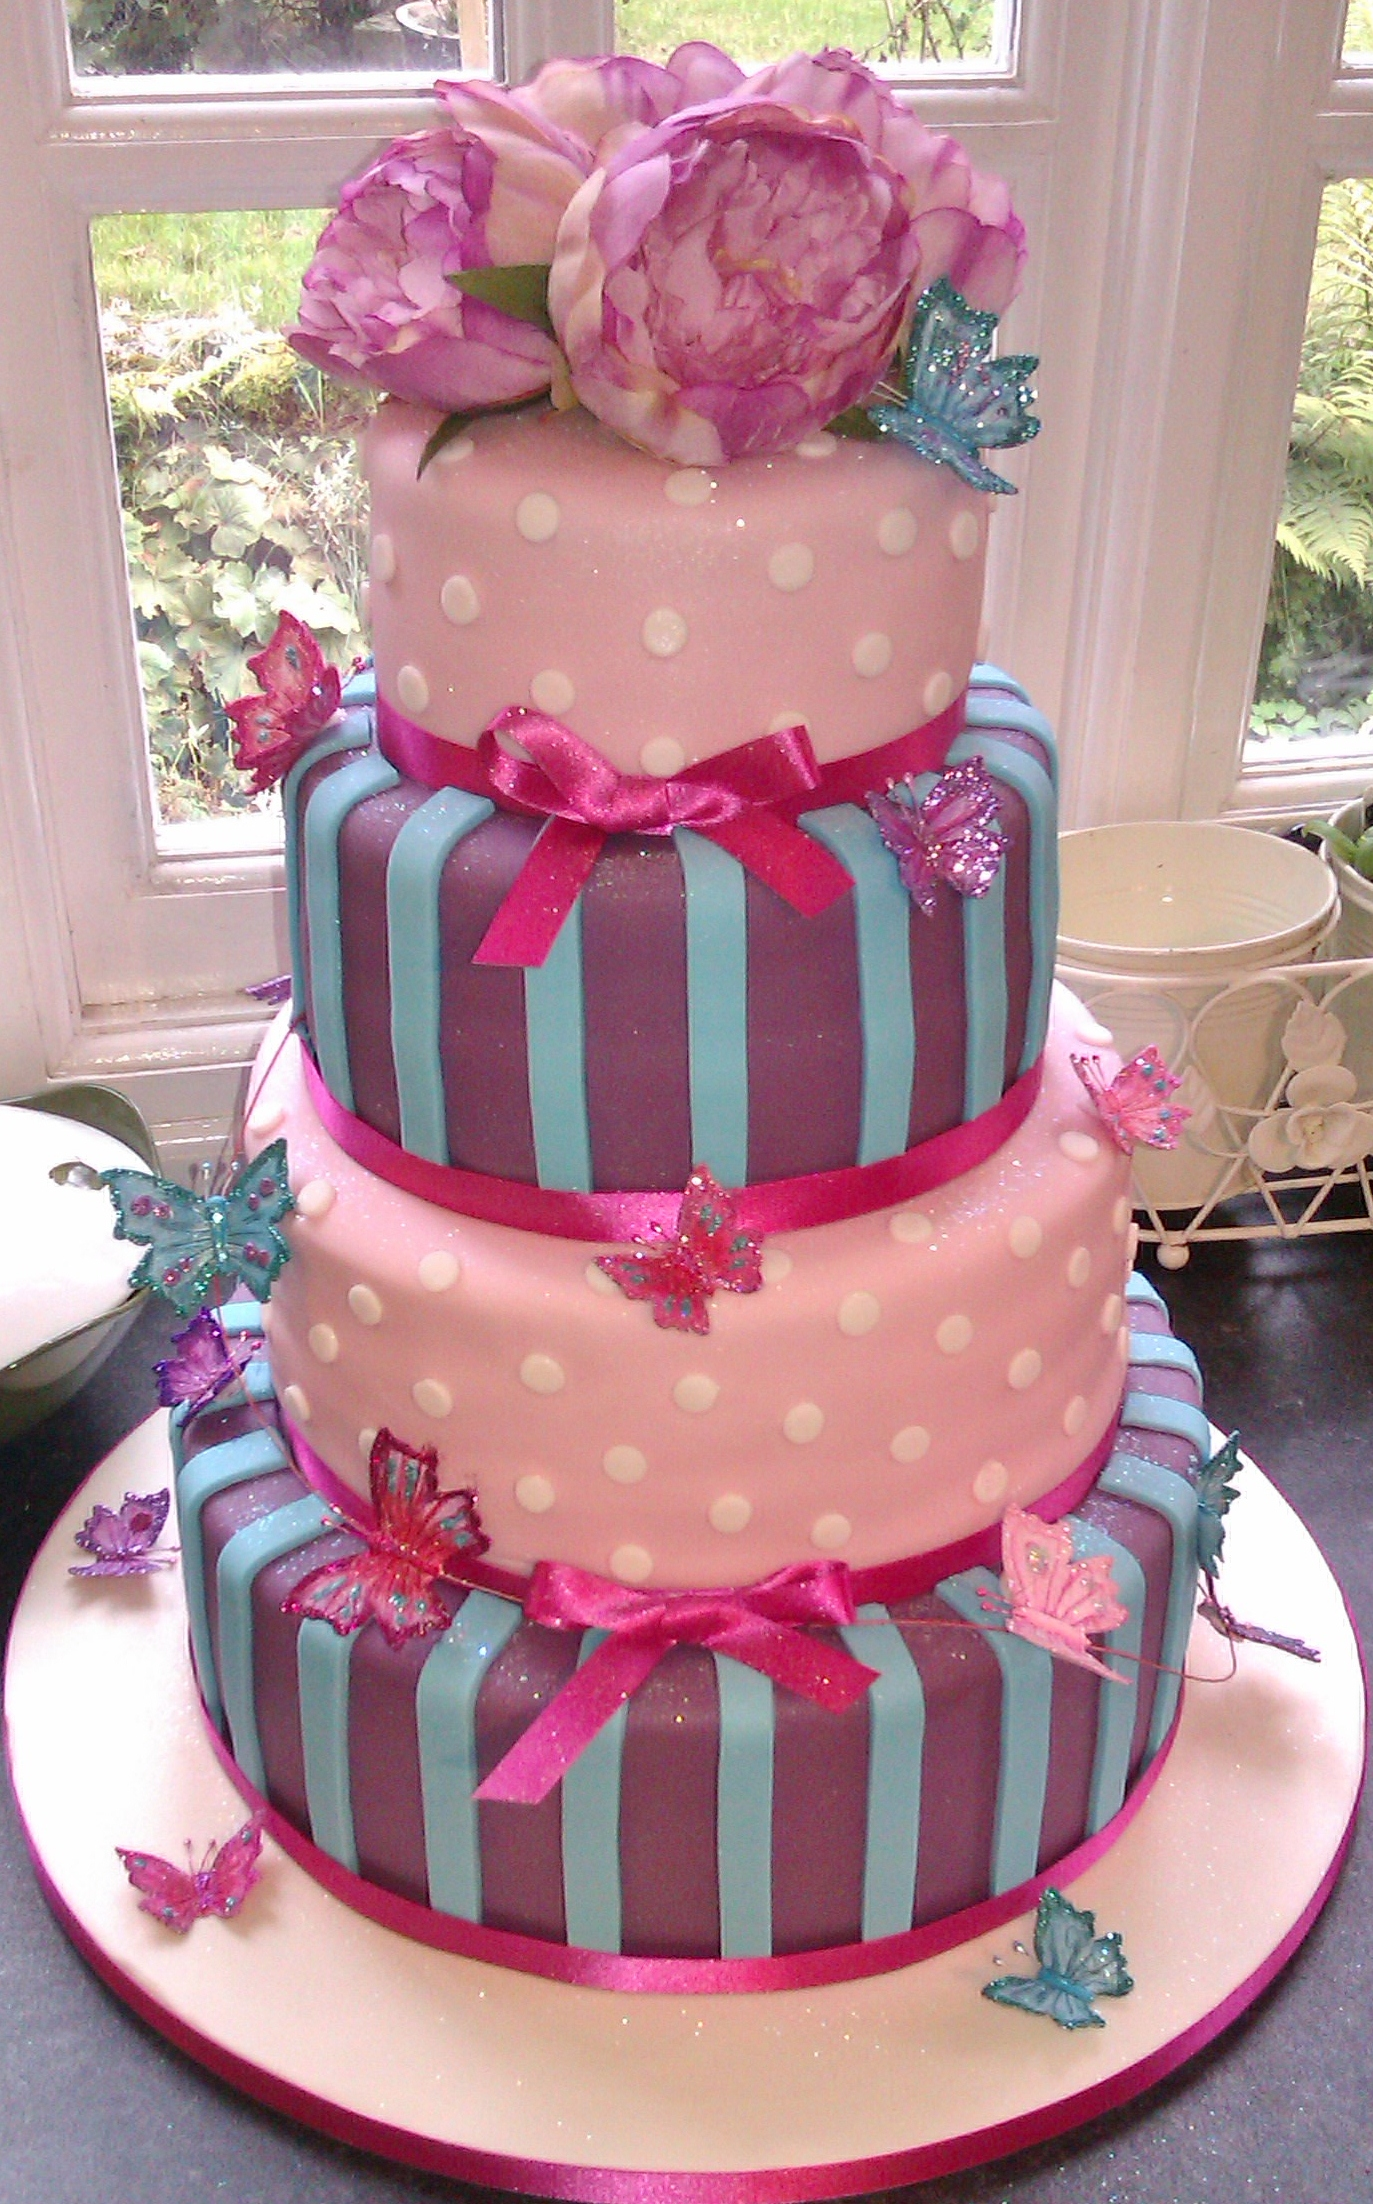 Delicious Wedding Cakes In Lancaster The Crazy Cake